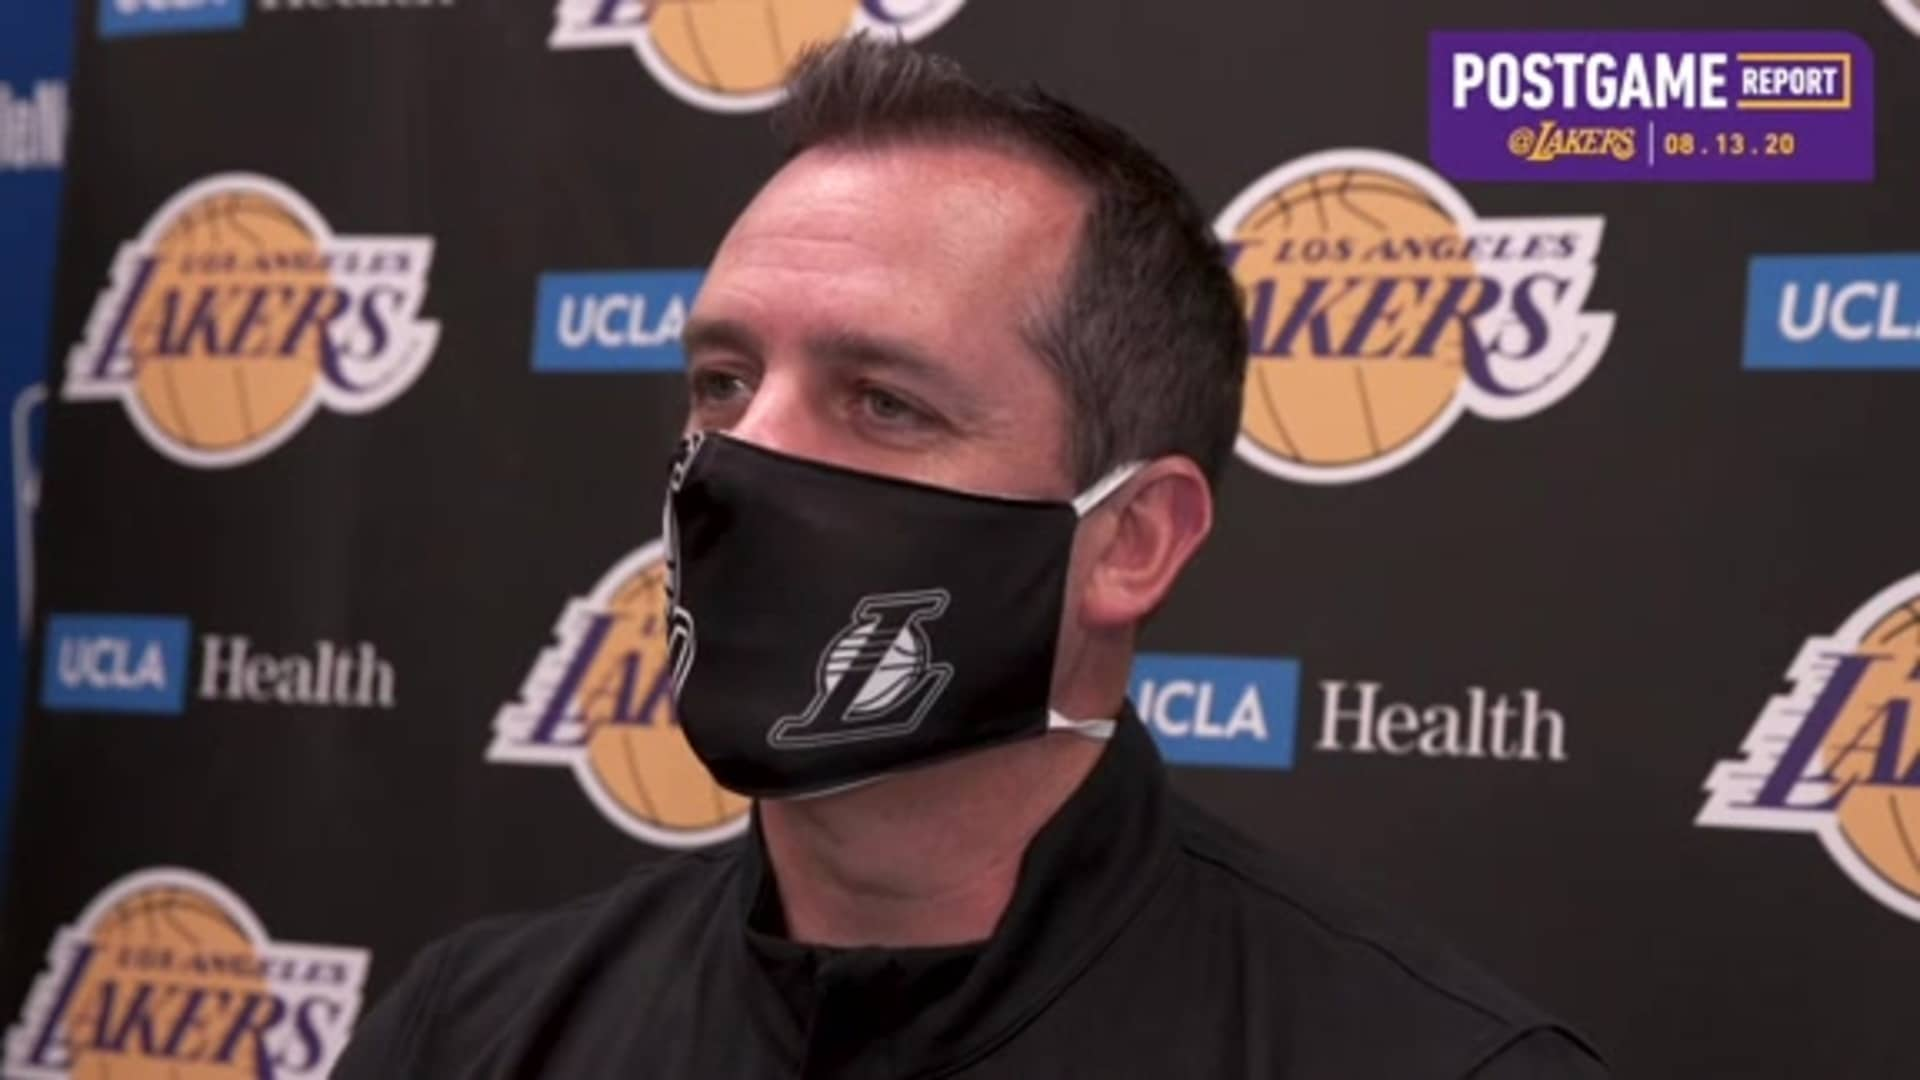 Lakers Postgame: Frank Vogel (8/13/20)